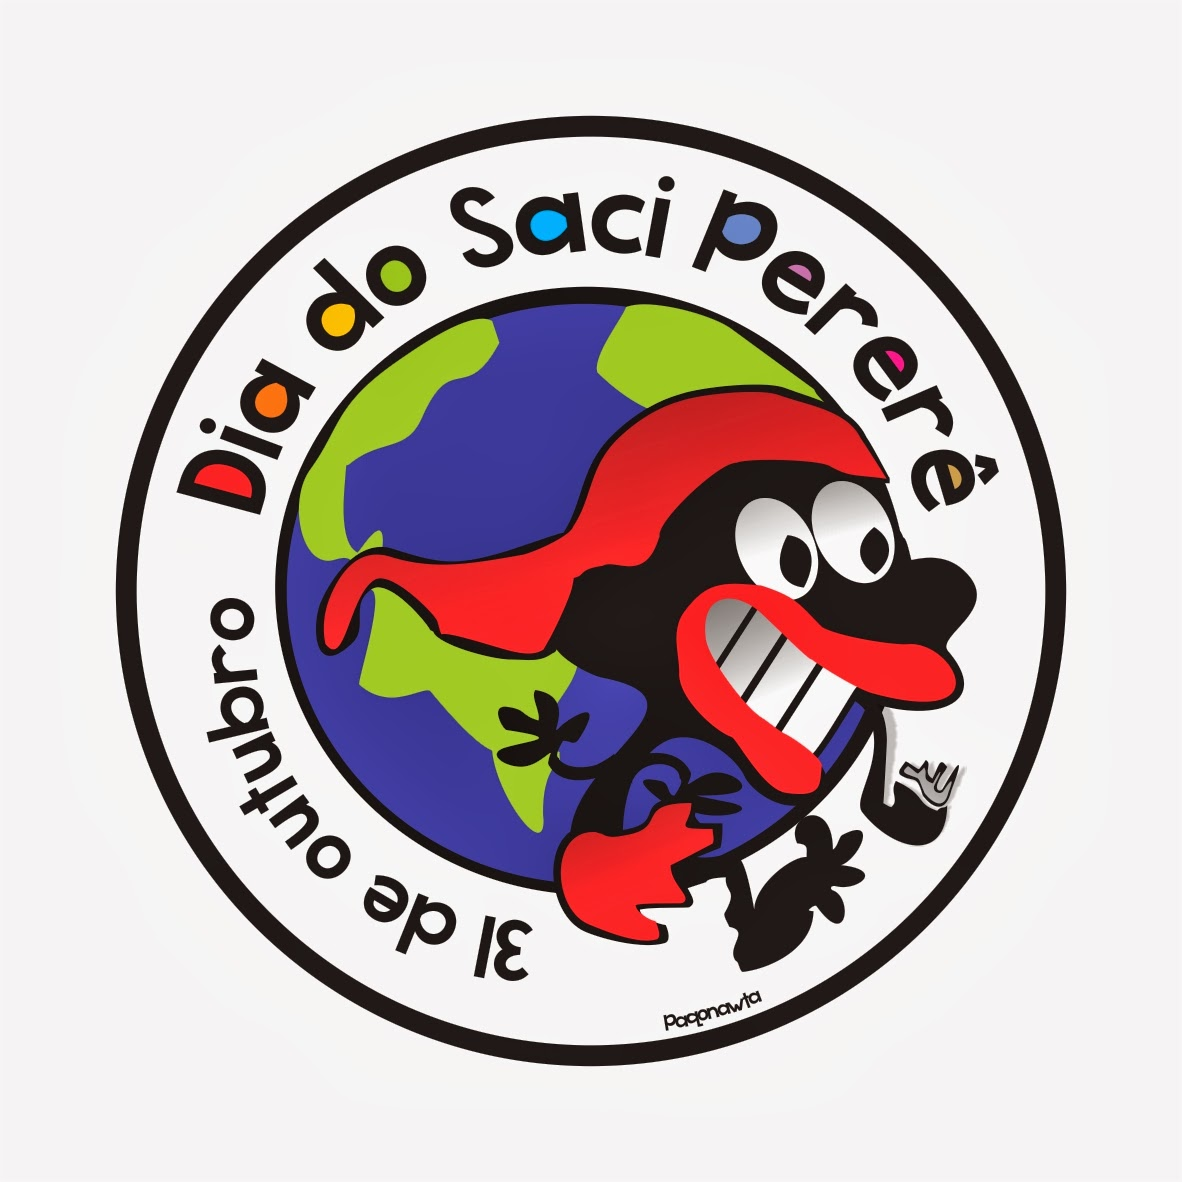 Viva o Saci Pererê